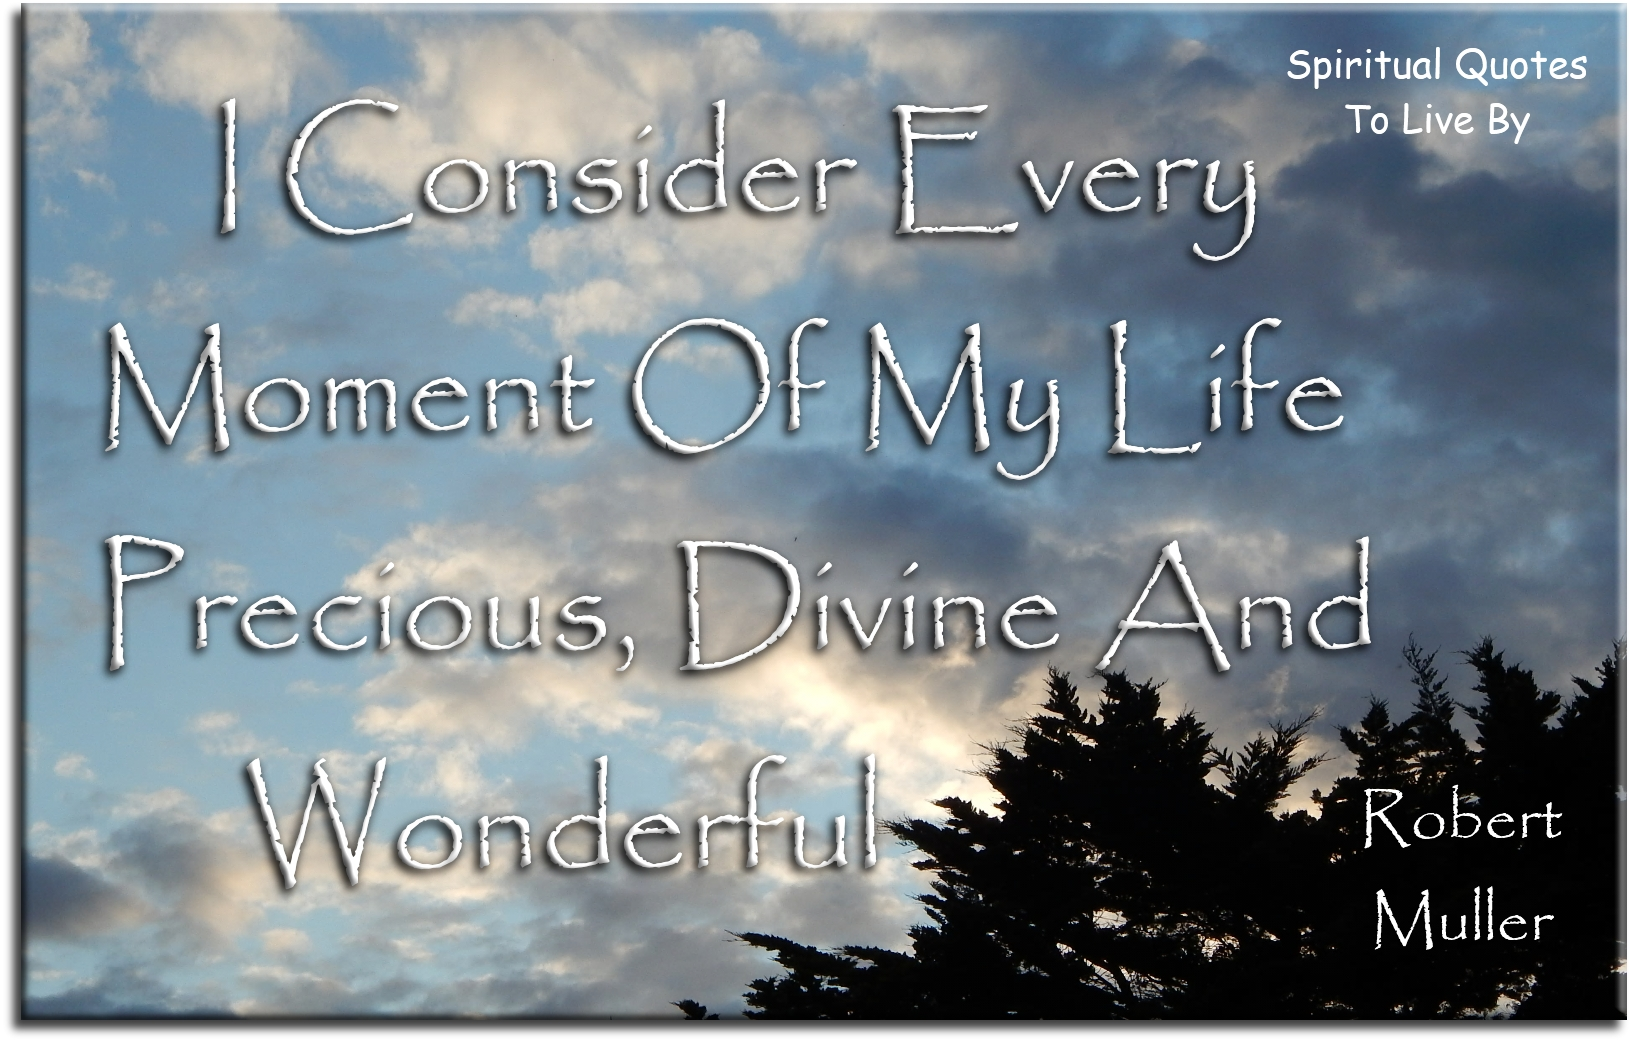 Robert Muller quote: I consider every moment of my life precious, Divine and wonderful. Spiritual Quotes To Live By